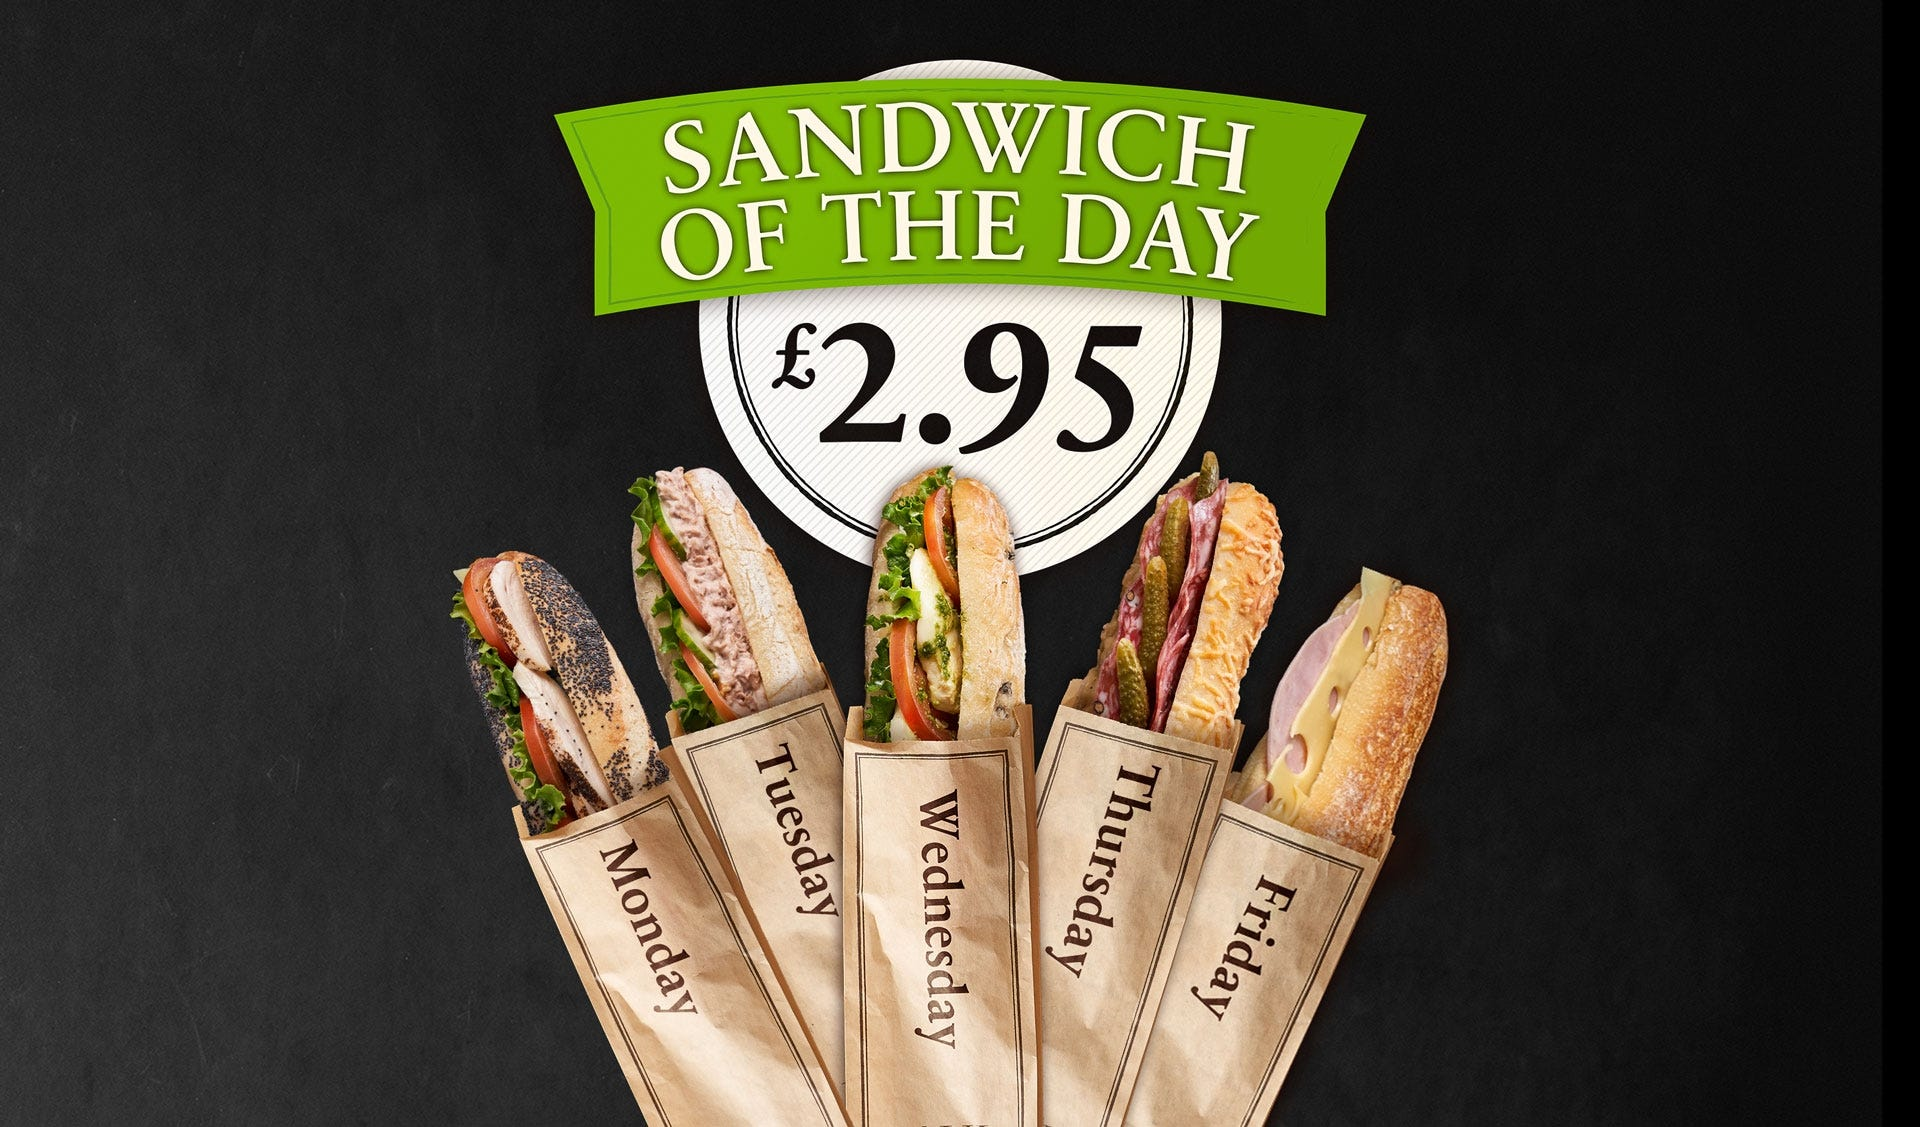 Sandwich of the day PAUL